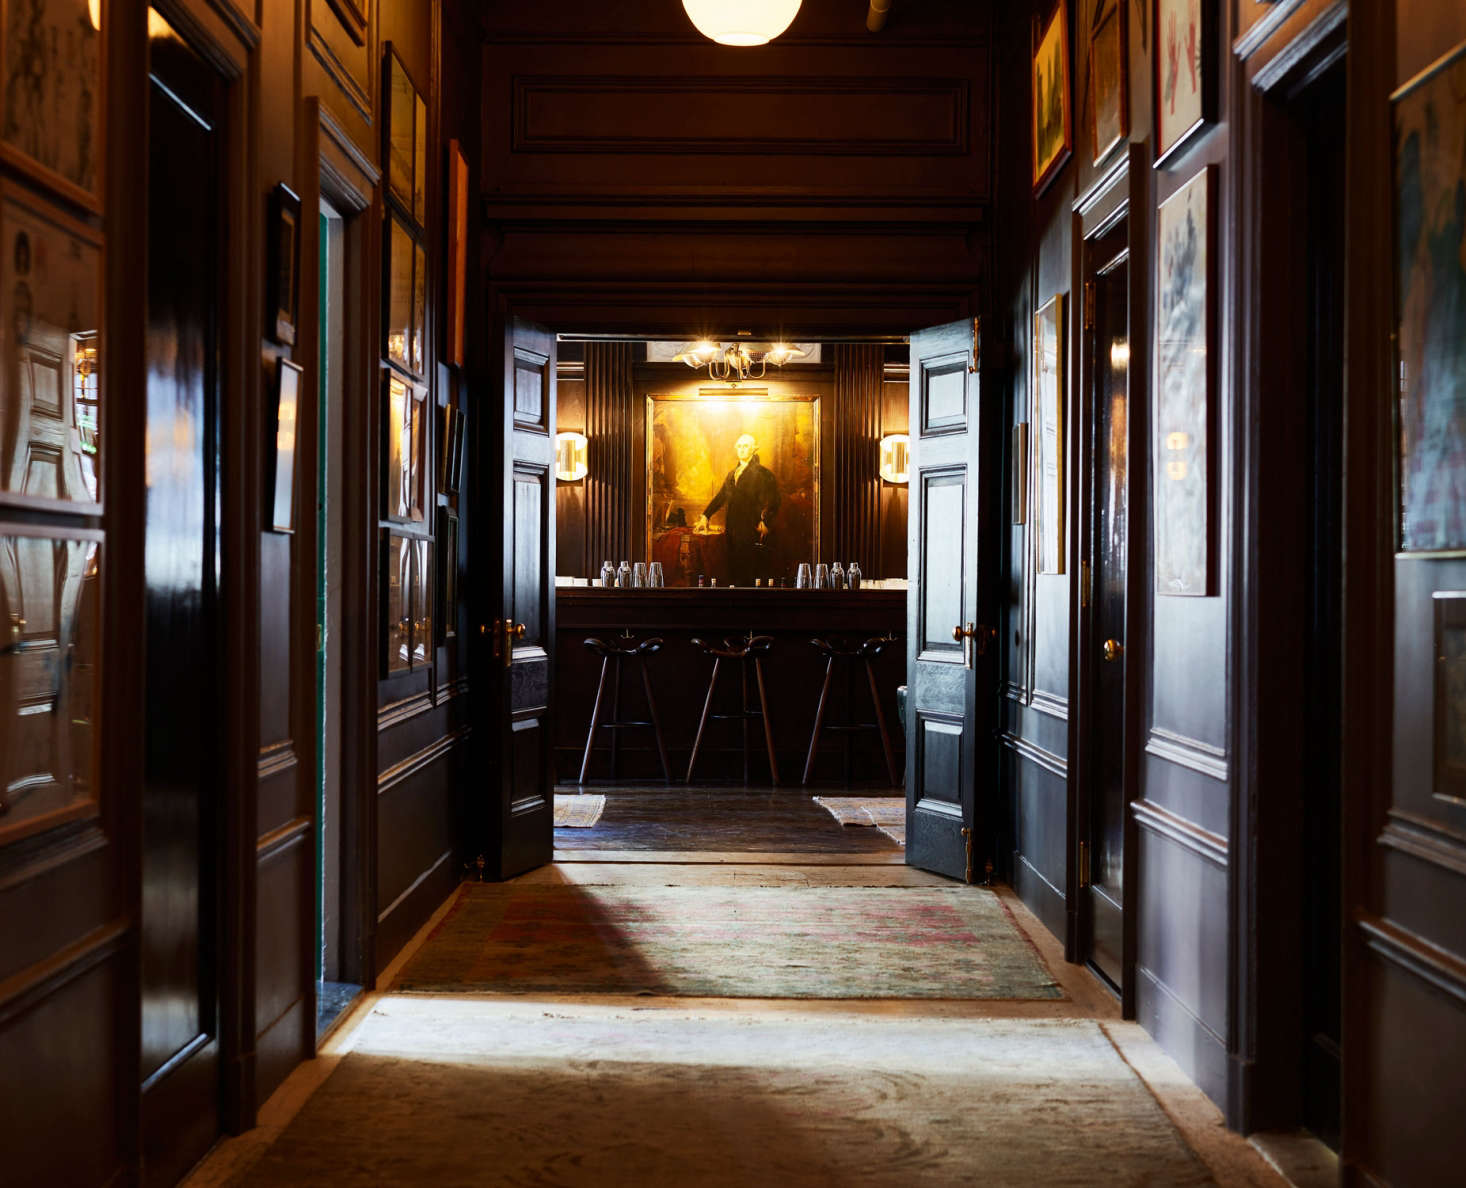 Freehand Hotel A Storied Manhattan Haunt Of Poets And